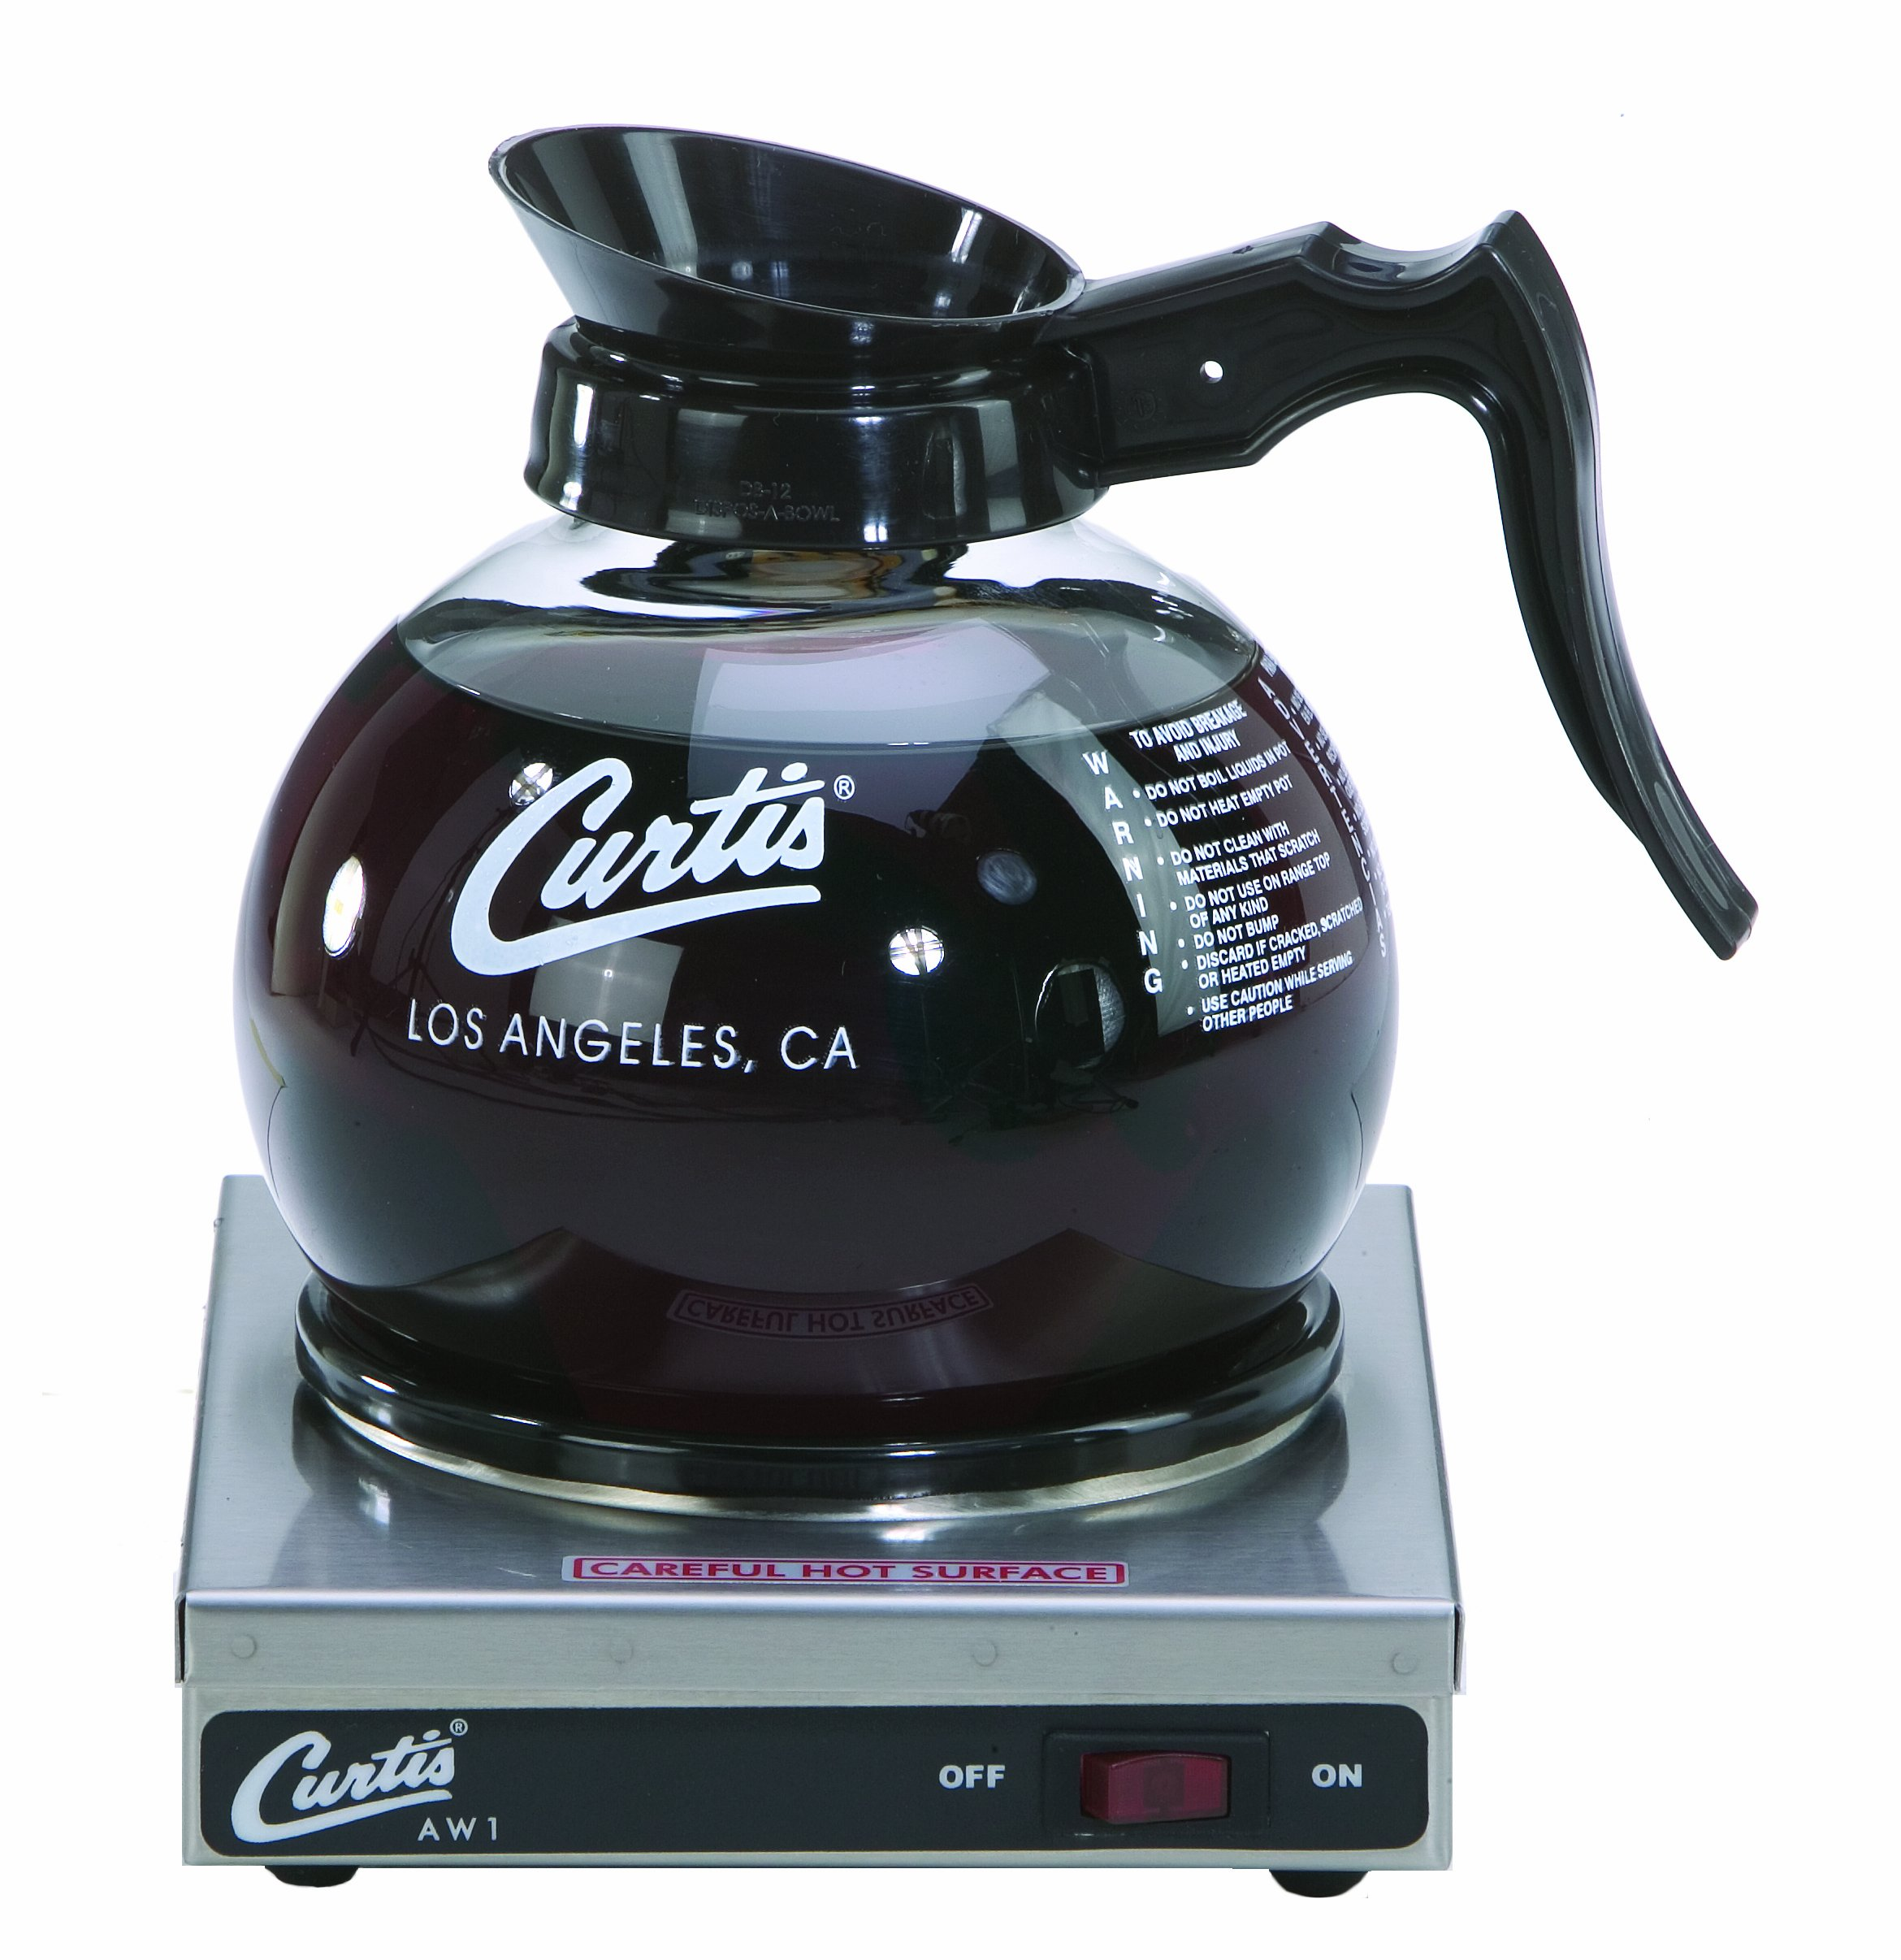 Wilbur Curtis Decanter Warmer 1 Station Warmer - Hot Plate to Keep Coffee Hot and Delicious  - AW-1-10 (Each)